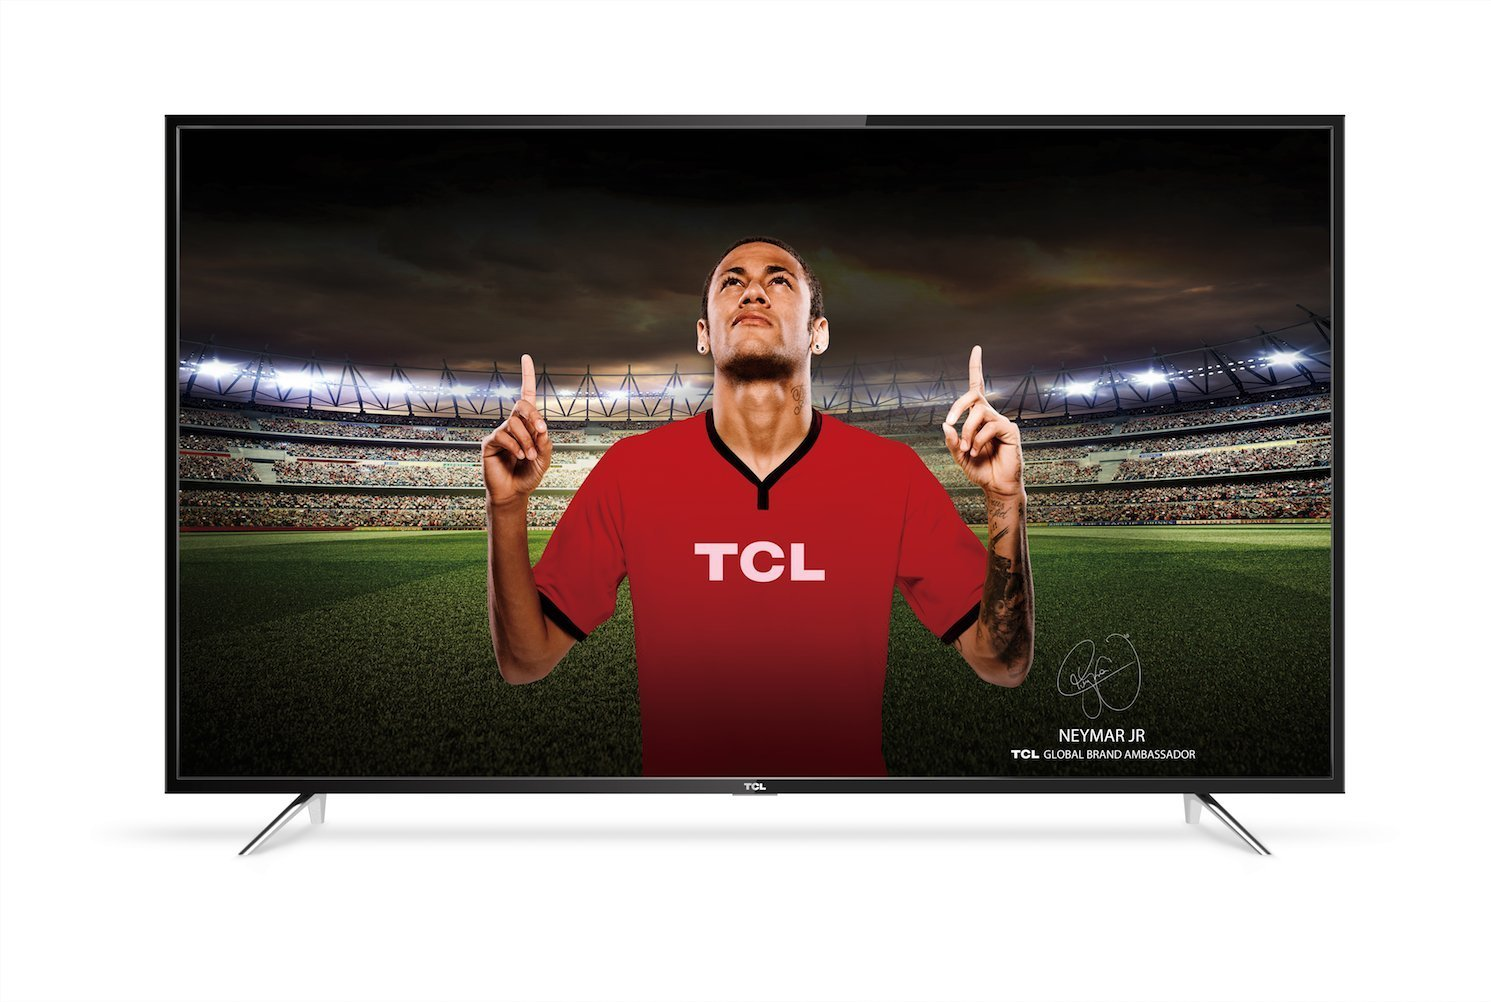 TCL 55DP608 55 Inch 4K UHD HDR TV with Smart Freeview Play Ultra HD 4K HDR TV Hot Deals 2018 most affordable